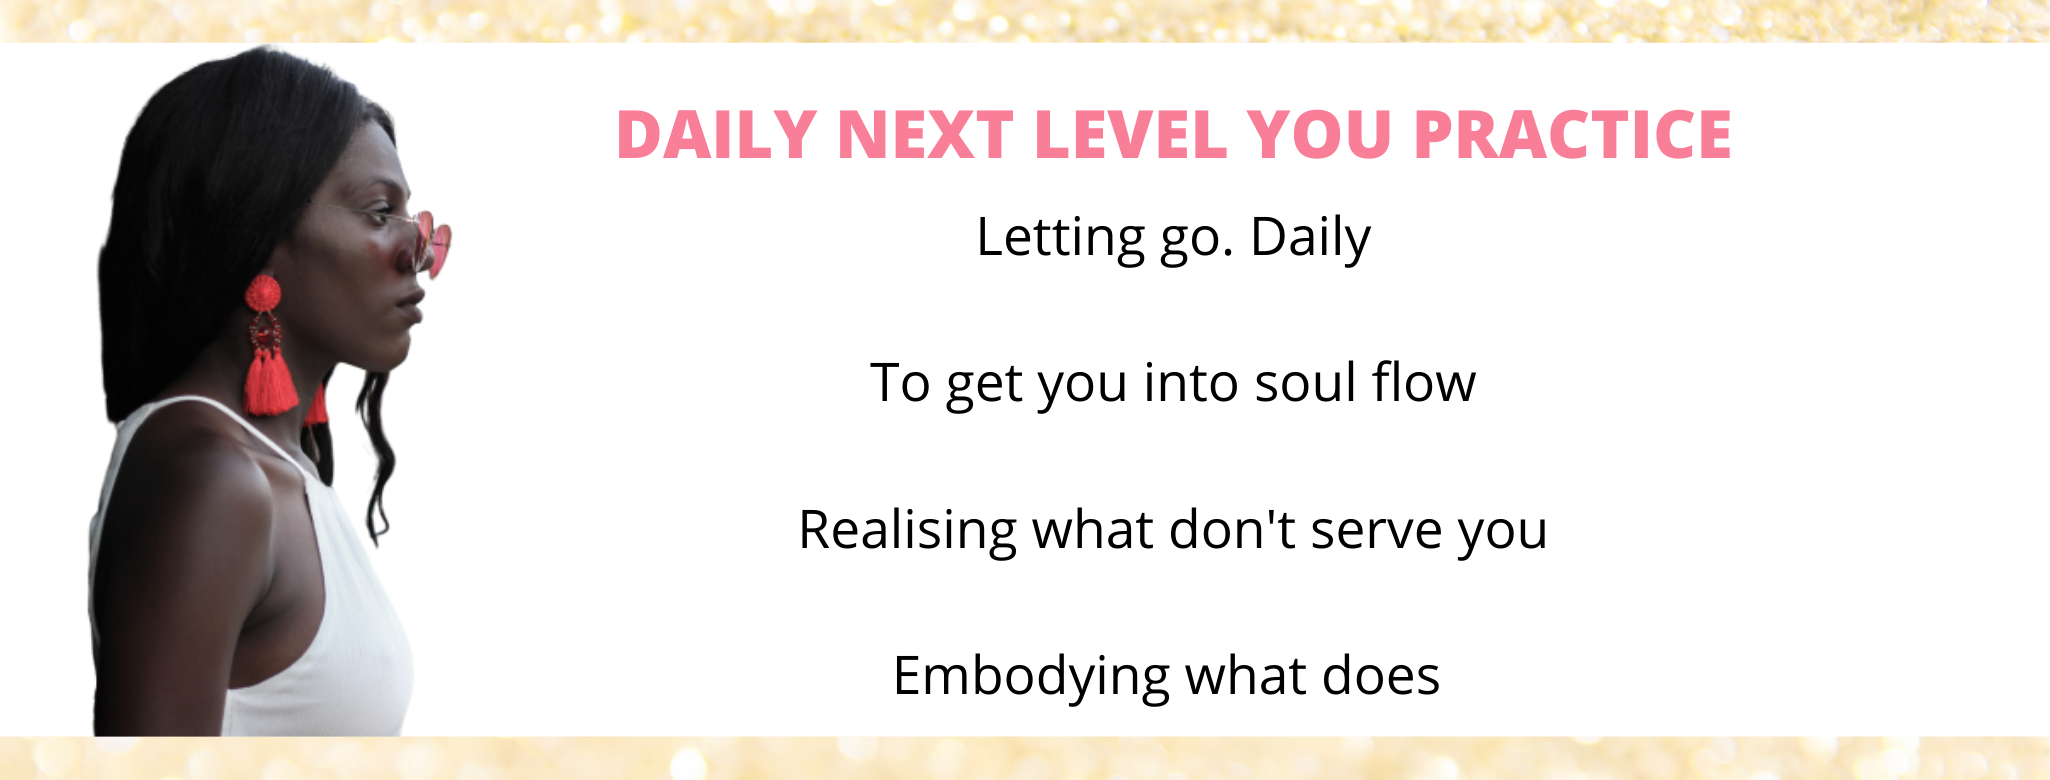 daily next level you practice